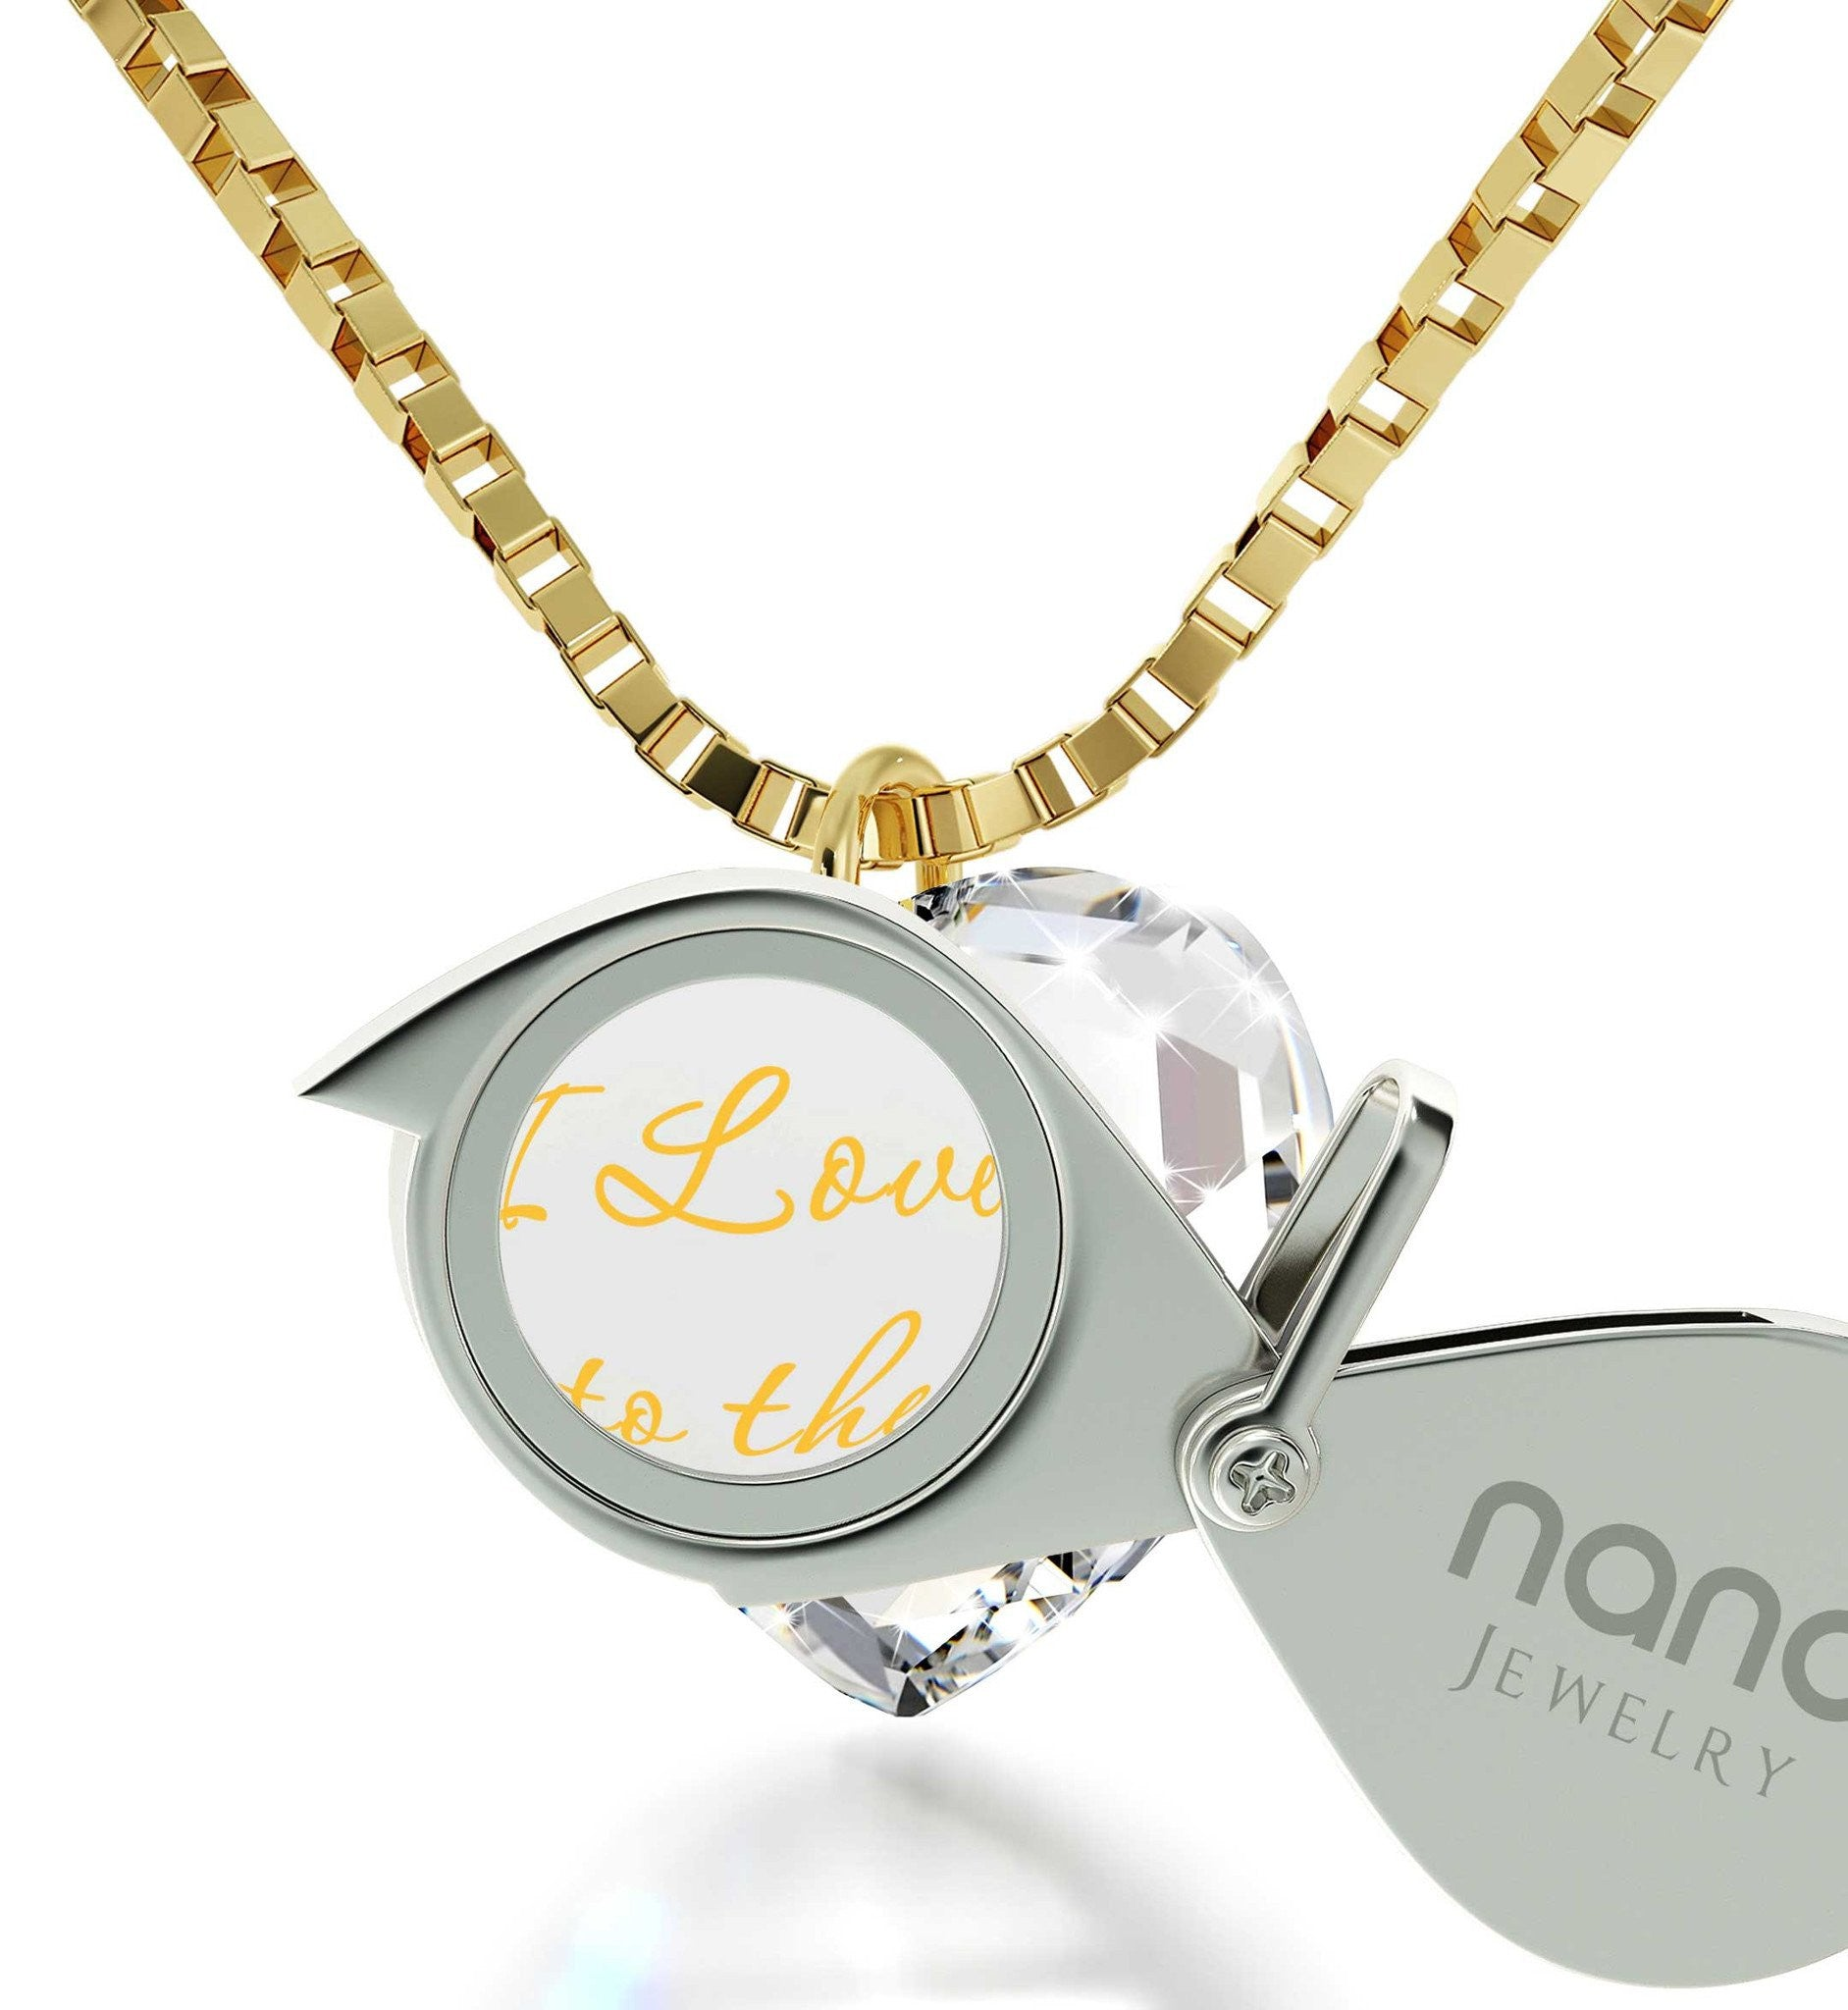 """I Love You to The Moon and Back"" Imprint, Cute Necklaces for Her,Womens Presents, Nano Jewelry"